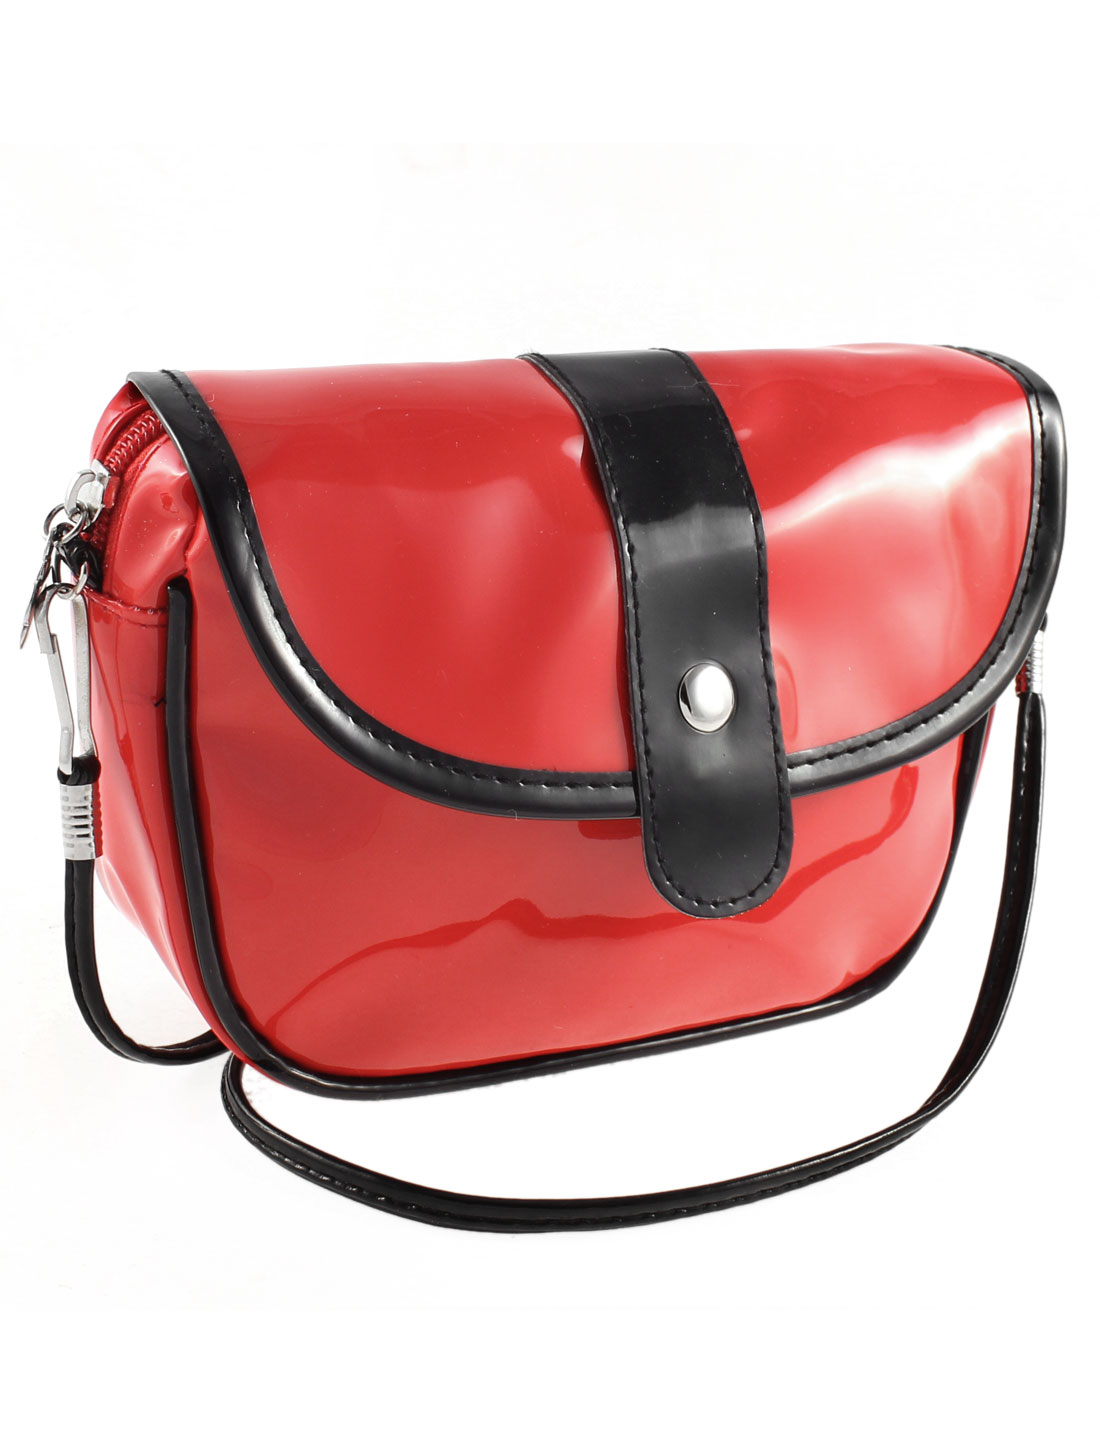 Women Zippered Single Compartment Patent Leather Shoulder Bag Red